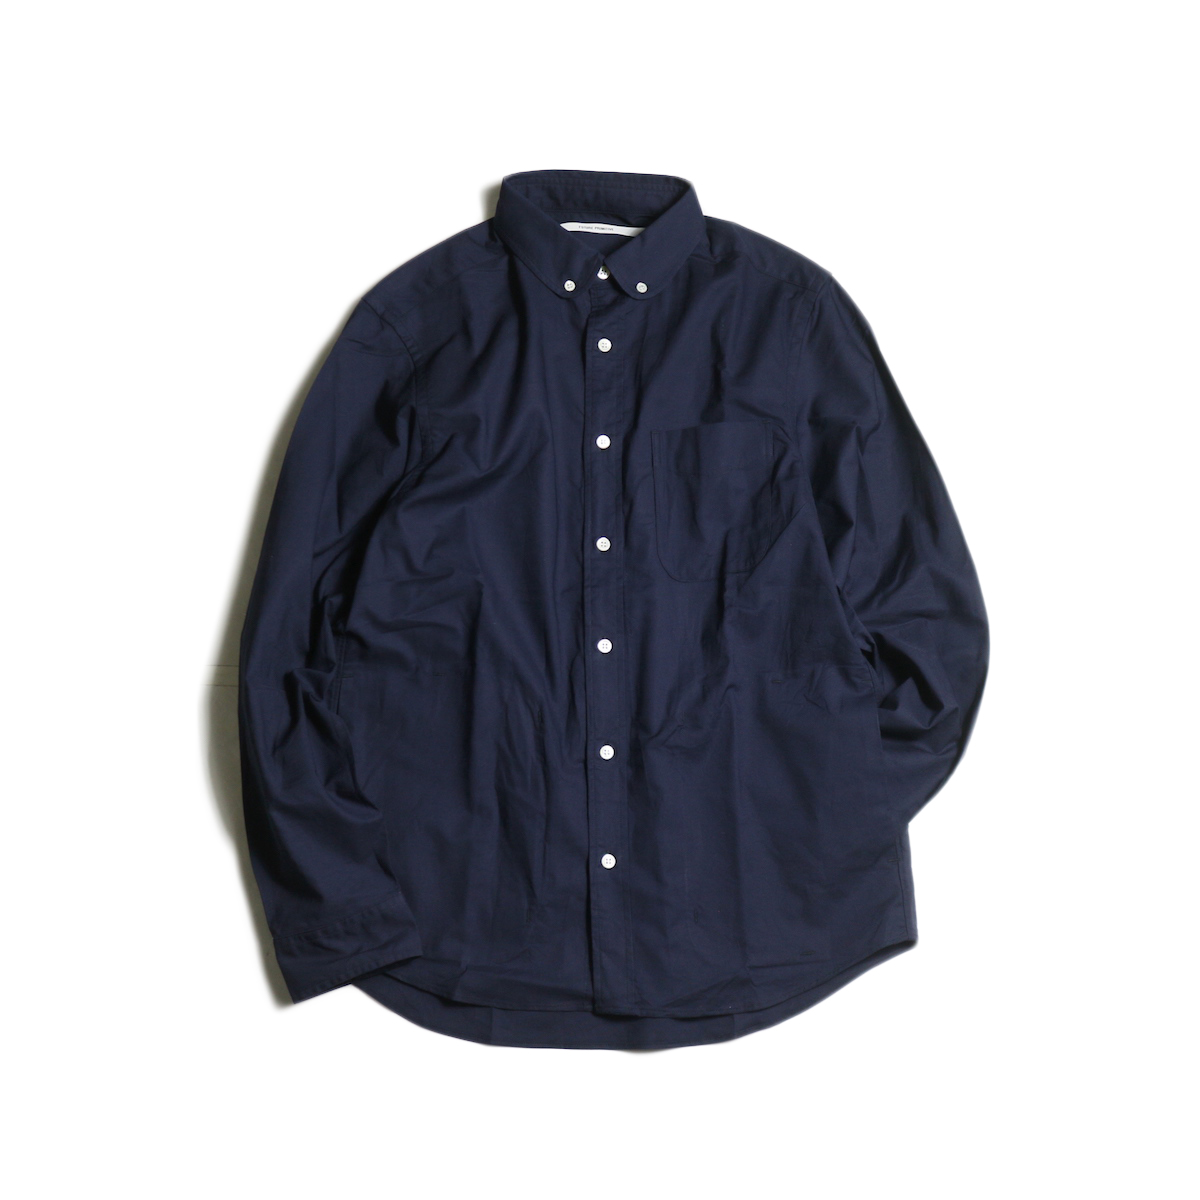 FUTURE PRIMITIVE / FP RC B.D L/S SHIRT (Navy)